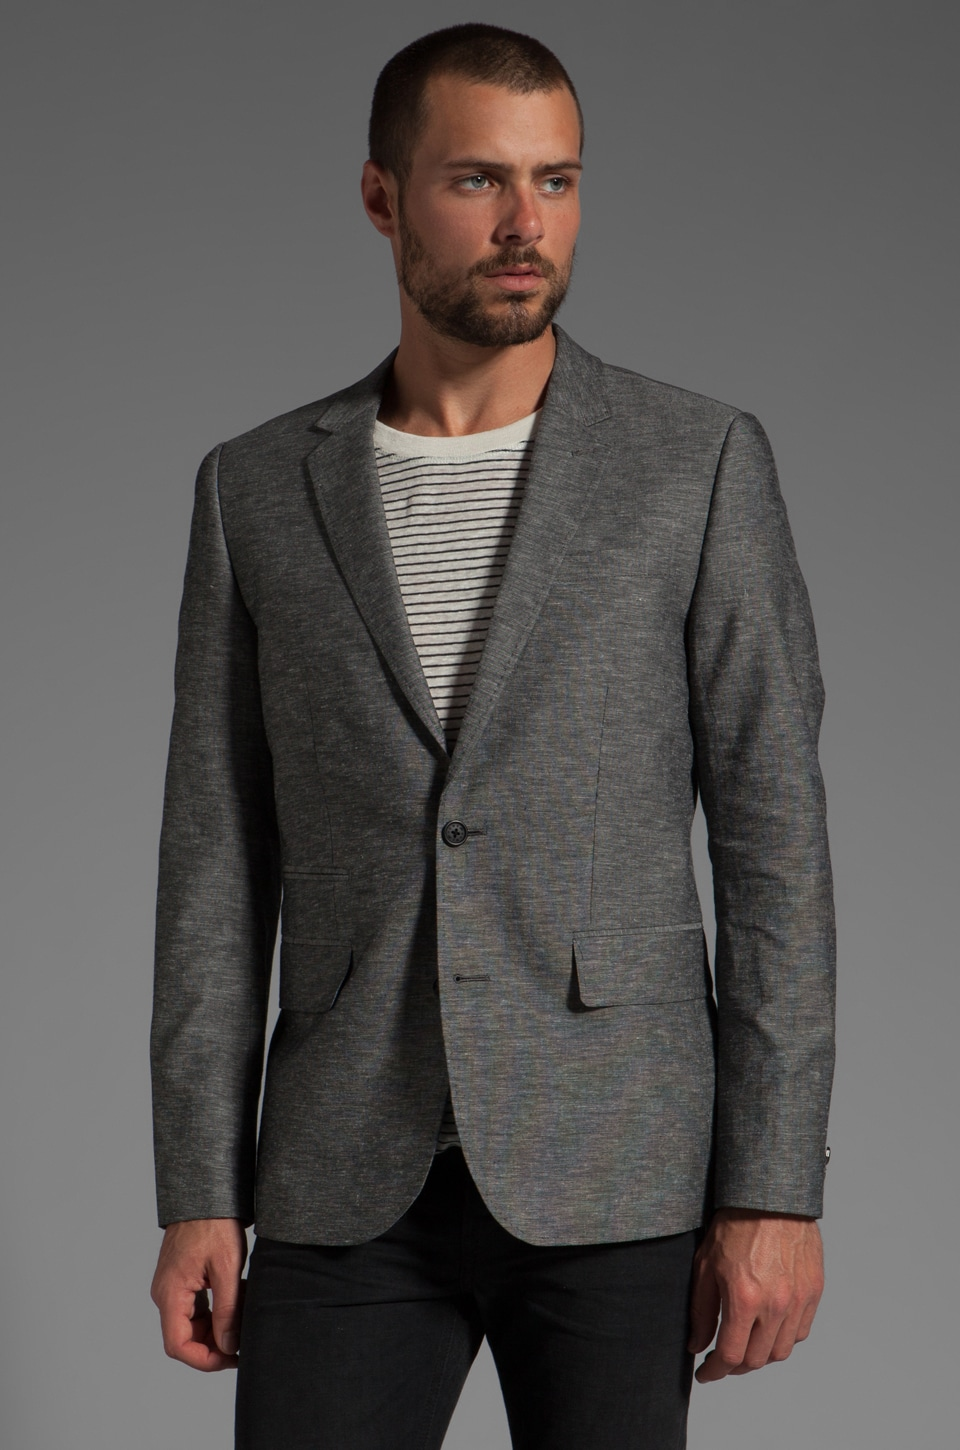 Howe Personal Jesus Chambray Blazer in Fade to Black